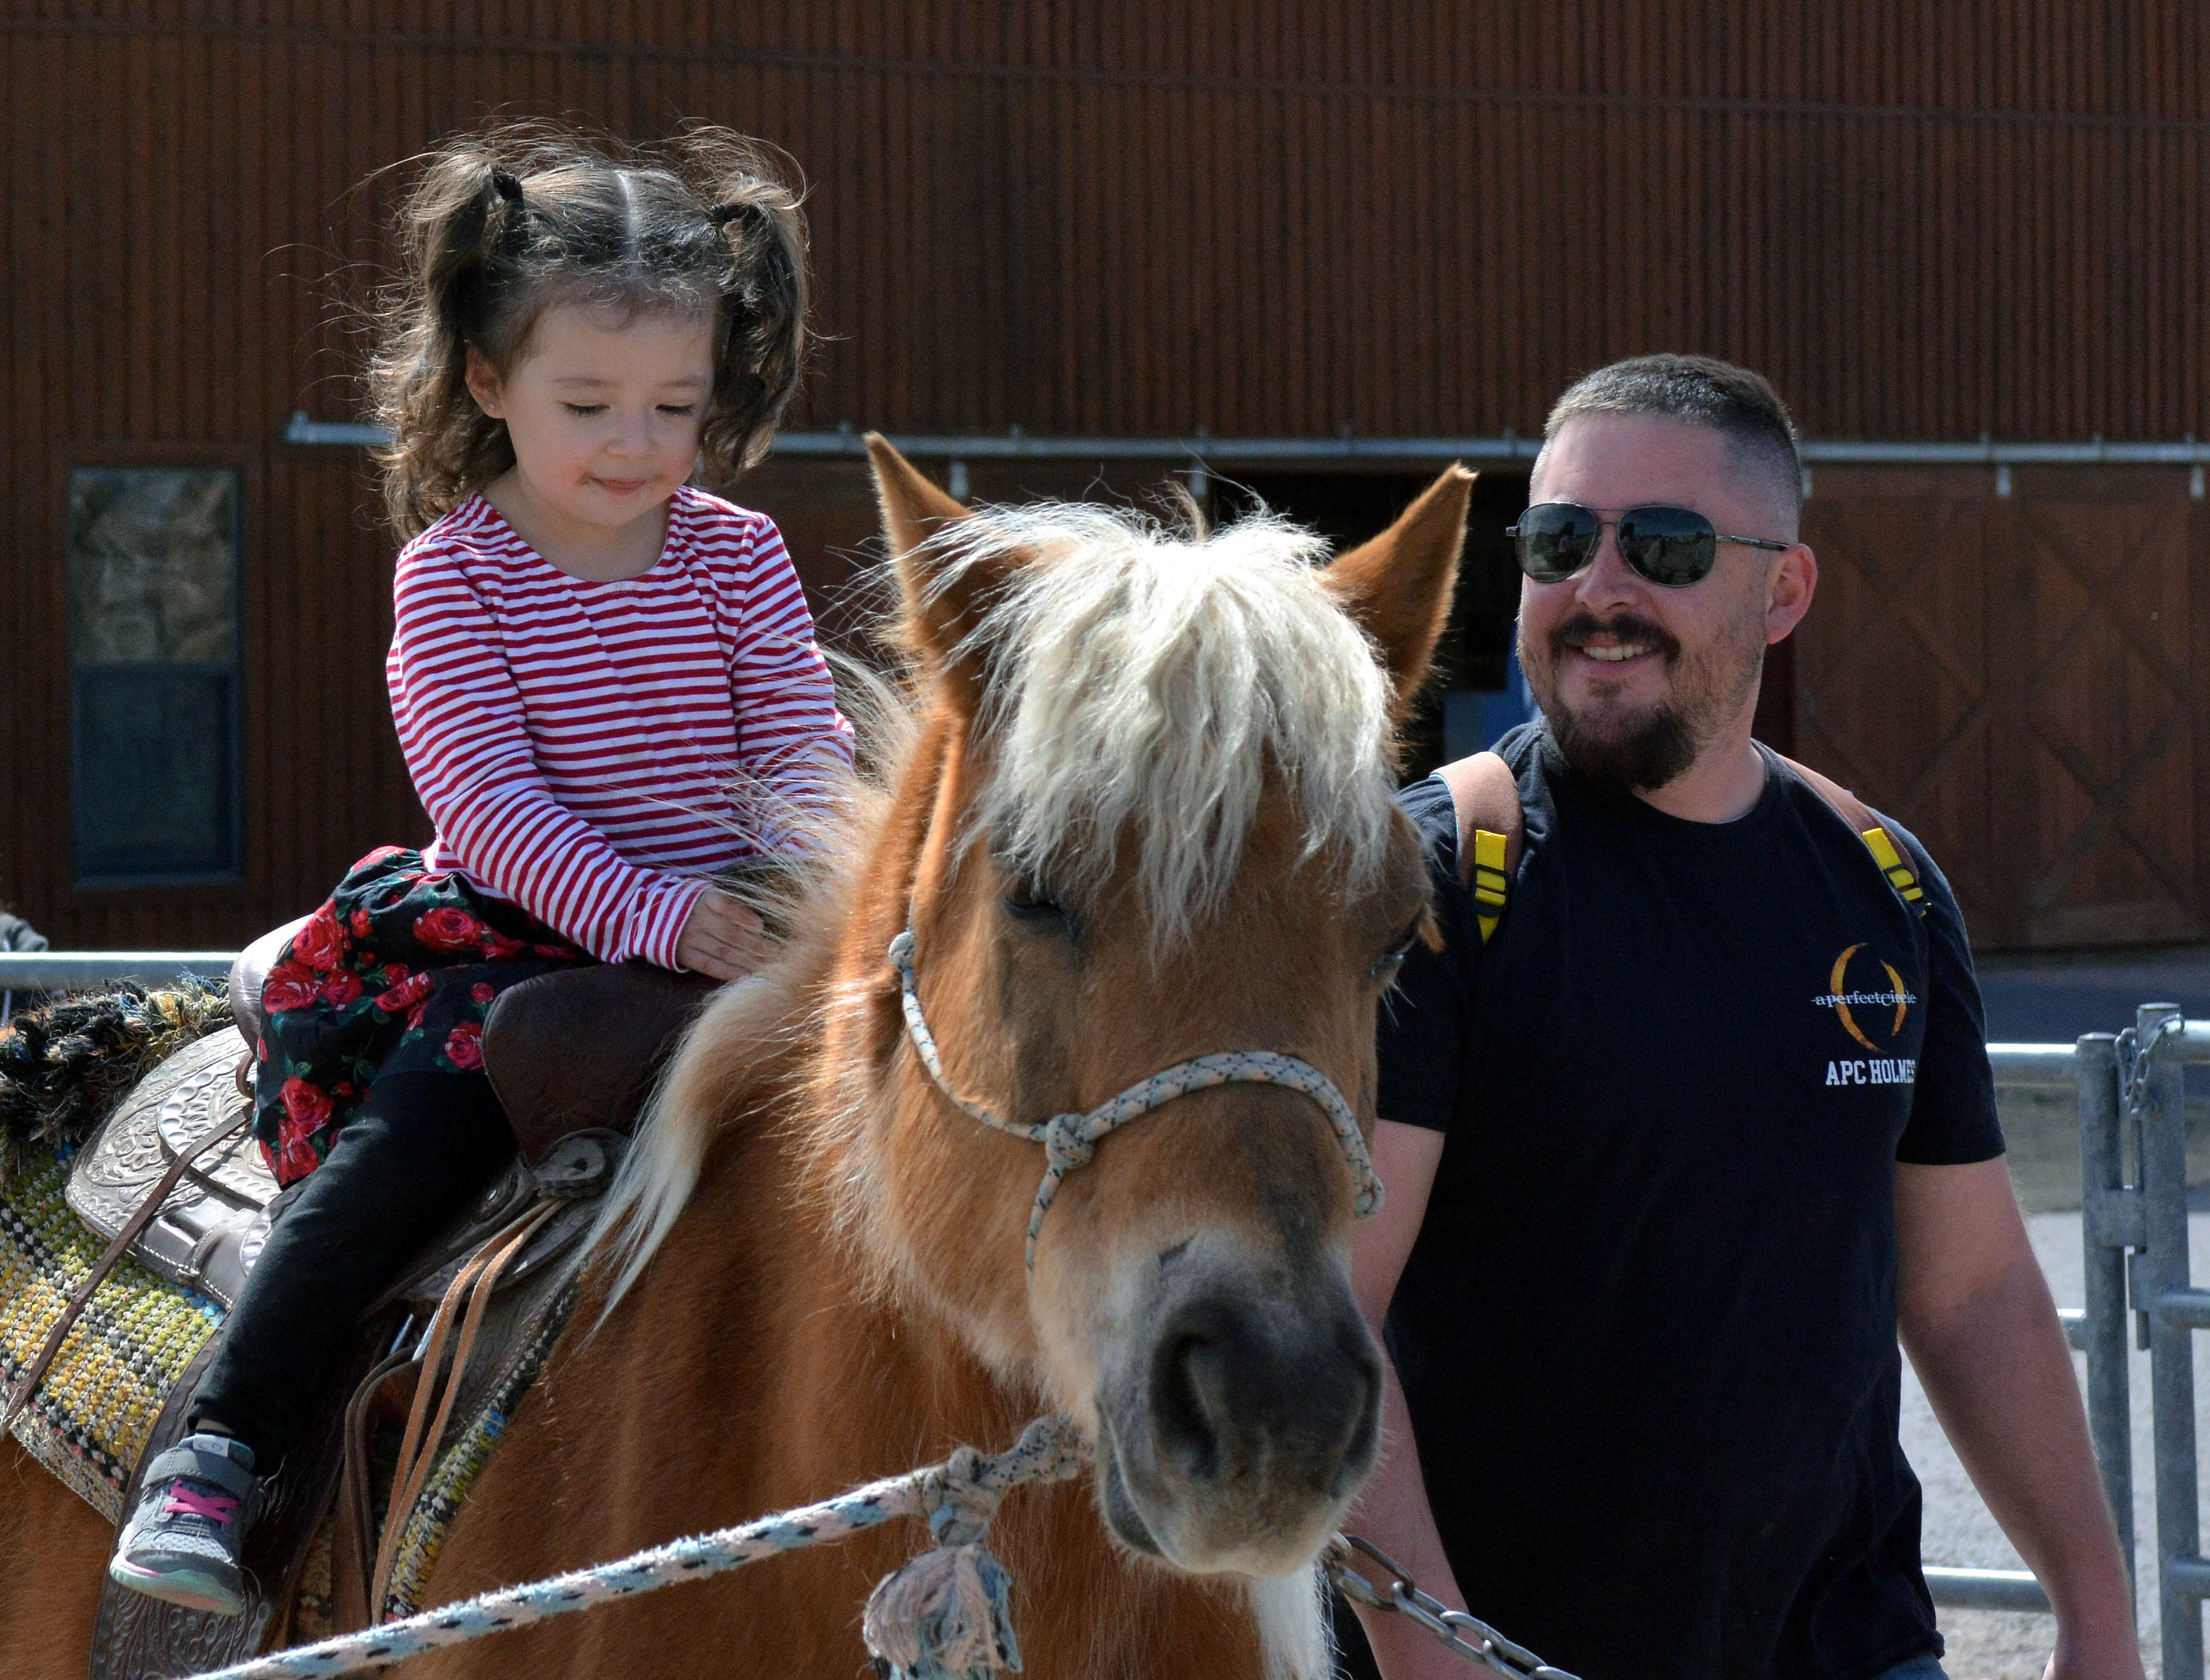 Isabella Stroller celebrates her third birthday by riding a horse for the first time as her father Josh Stroller walks by her side during the 20th annual Cowboy Days held Saturday, March 2, 2019, at the New Mexico Farm and Ranch Heritage Museum.